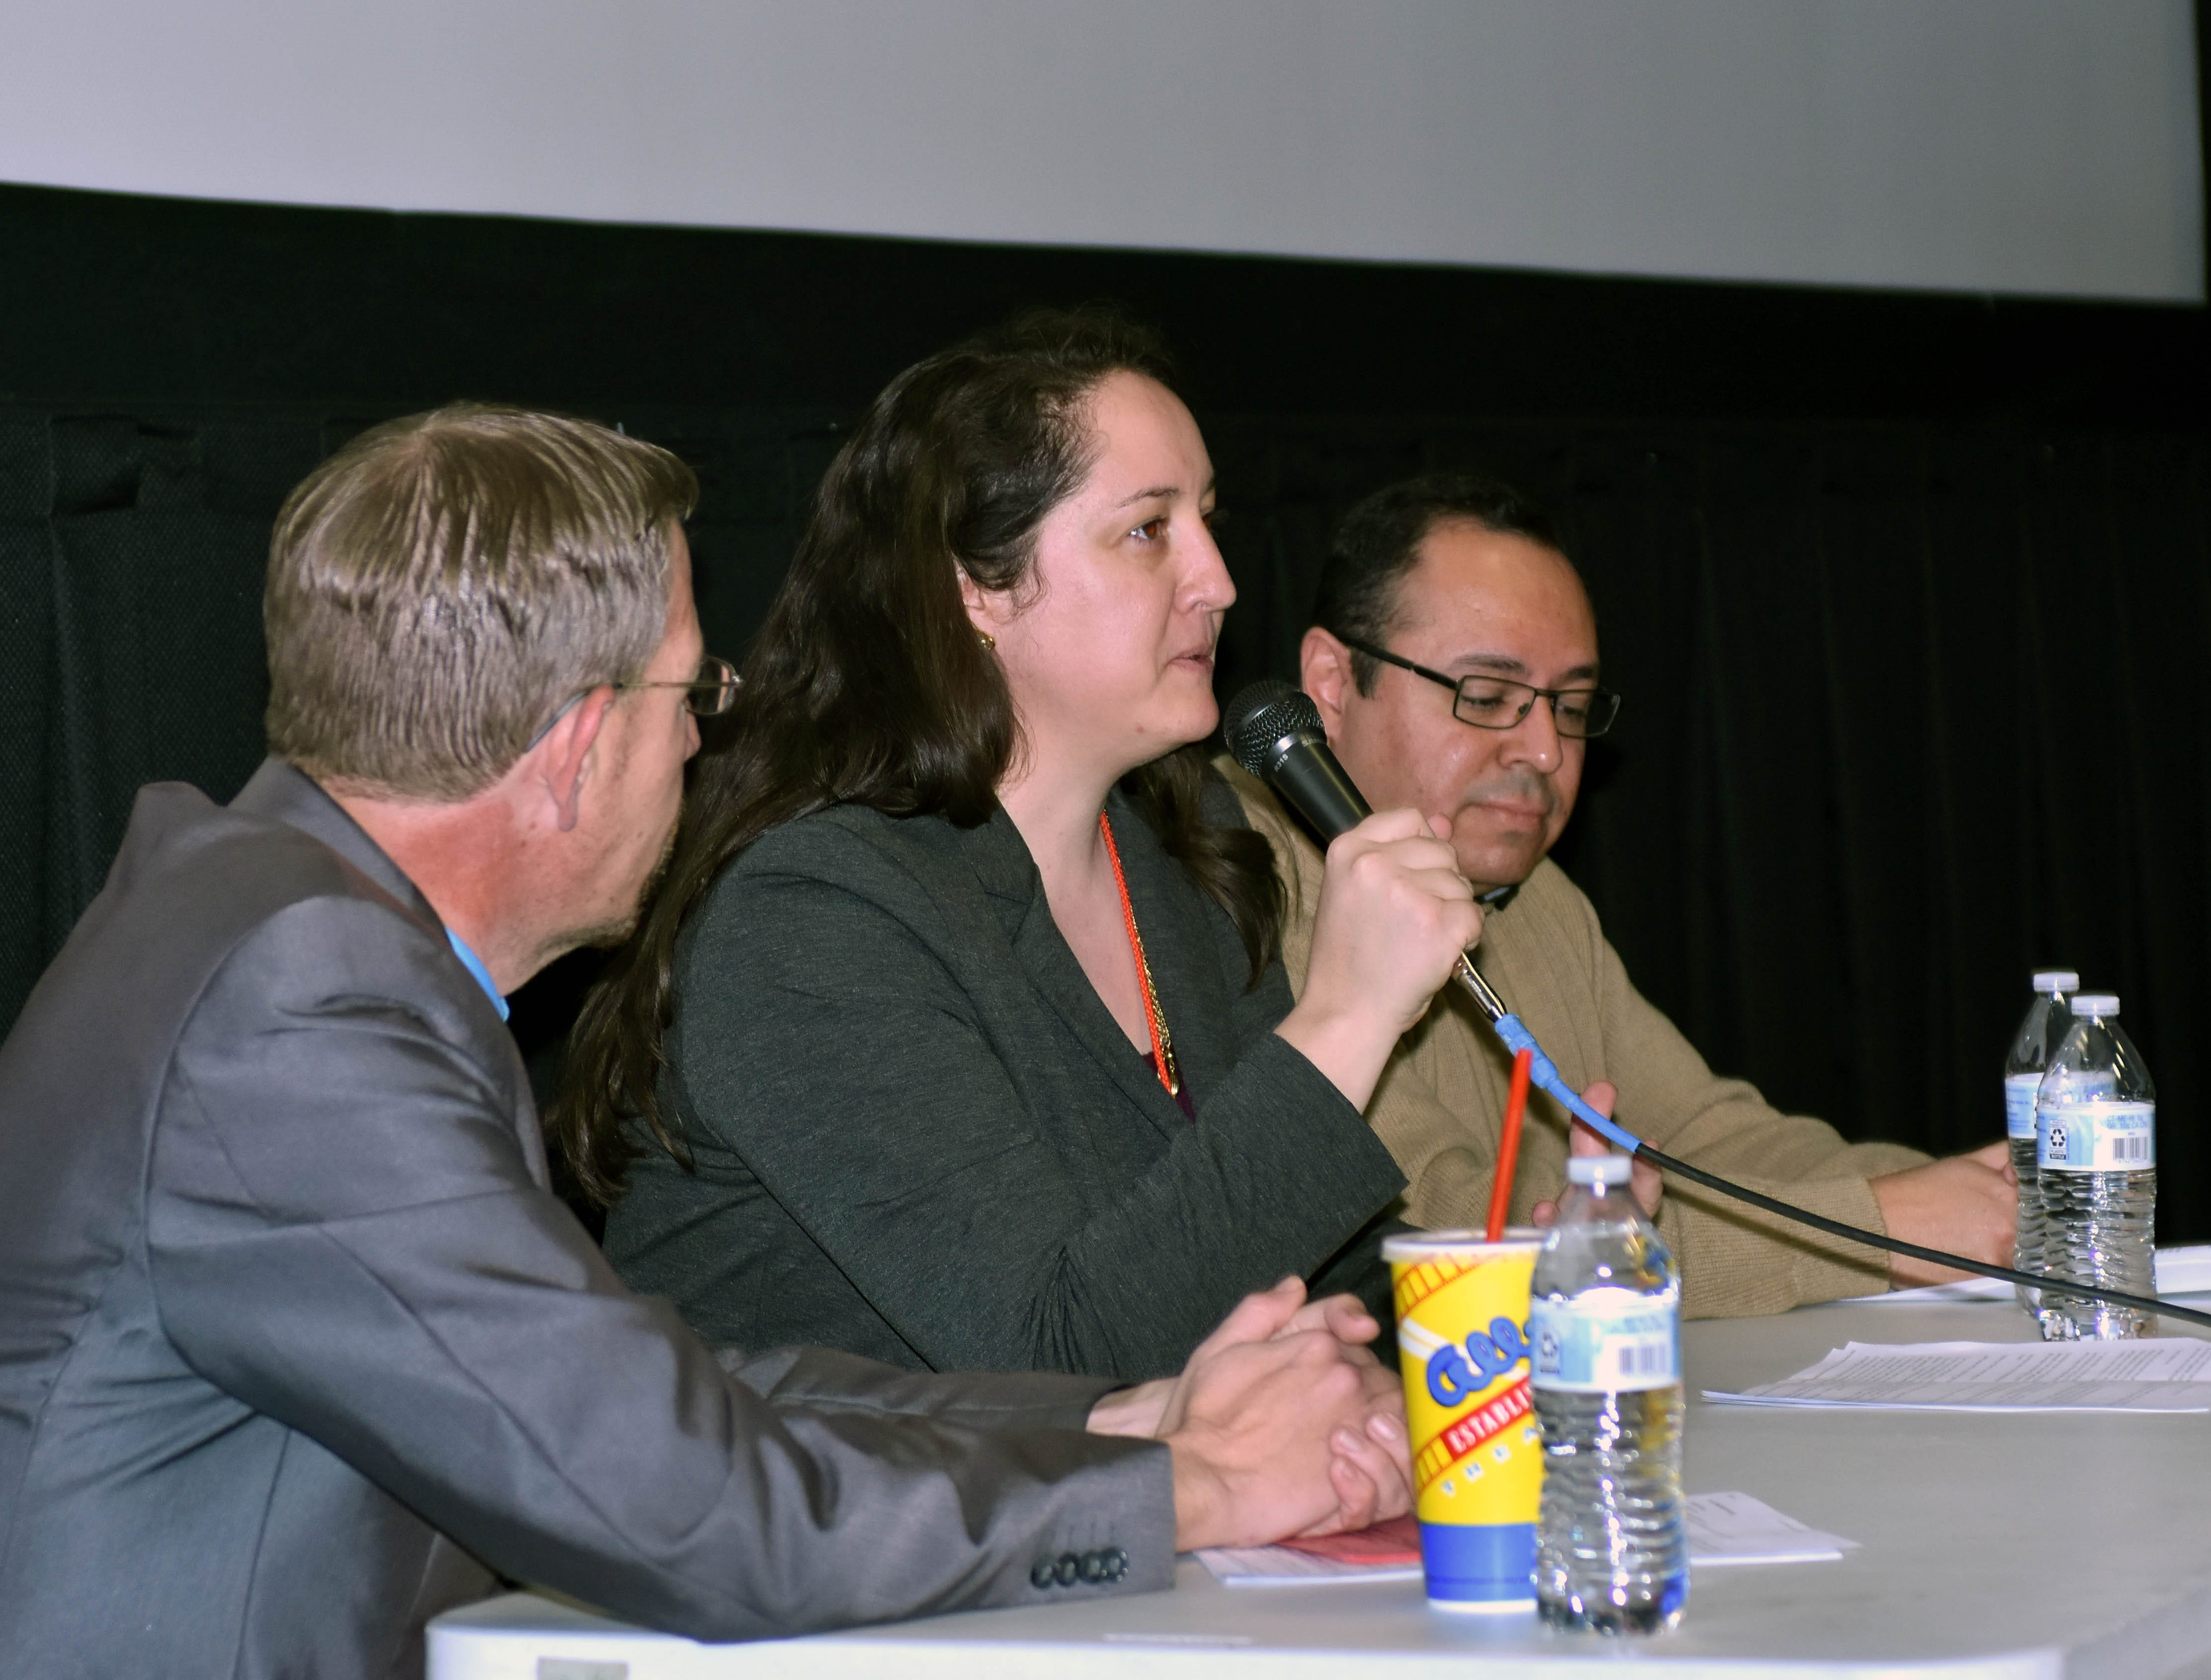 """Las Cruces Sun-News reporter Diana Alba Soular participates in a discussion following the screening of """"The Wall"""" on Saturday, Feb. 23, 2019, at Cineport 10, part of the Las Cruces International Film Festival. Damien Willis, left, moderated the panel featuring Alba Soular and El Paso Times reporter Daniel Borunda, right."""